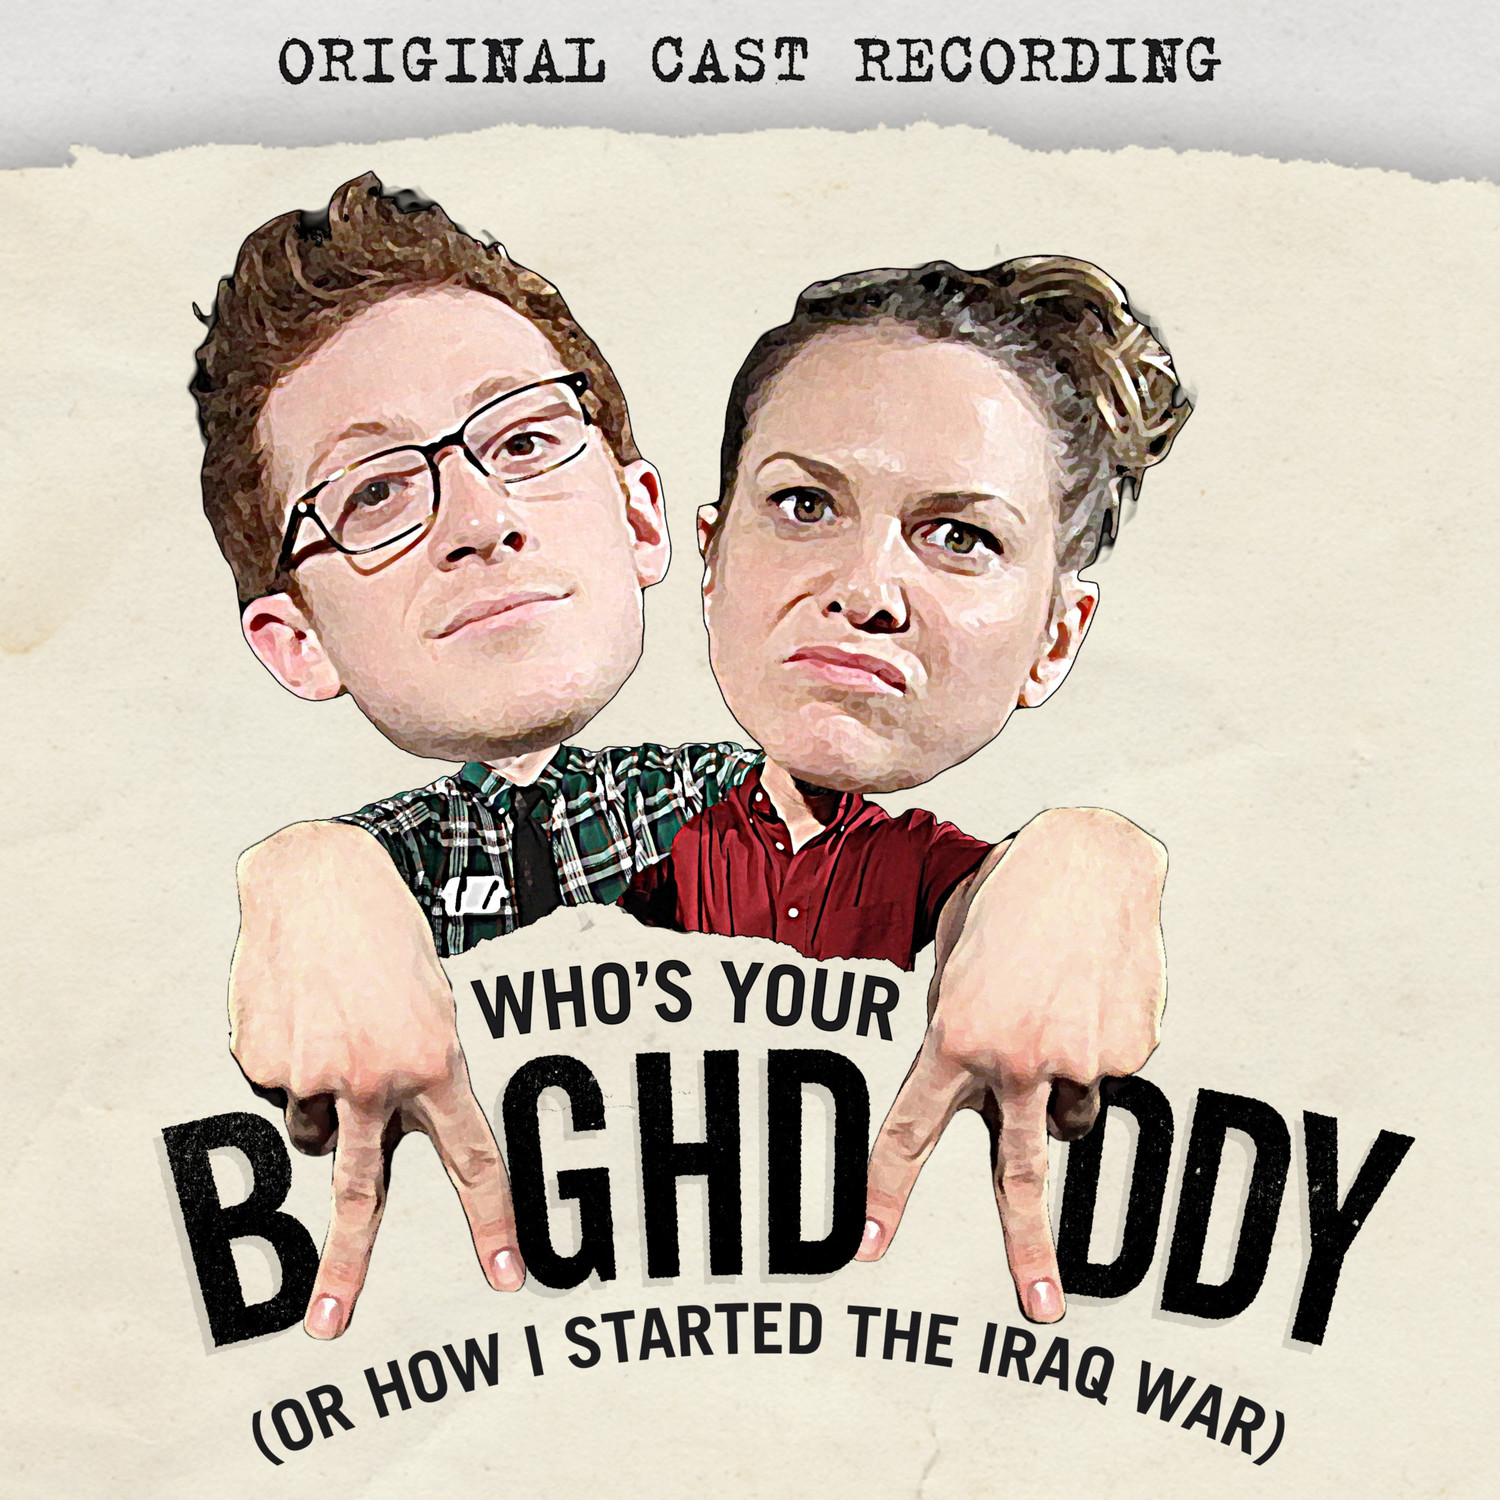 BWW Album Review: WHO'S YOUR BAGHDADDY Deserves Everything And More